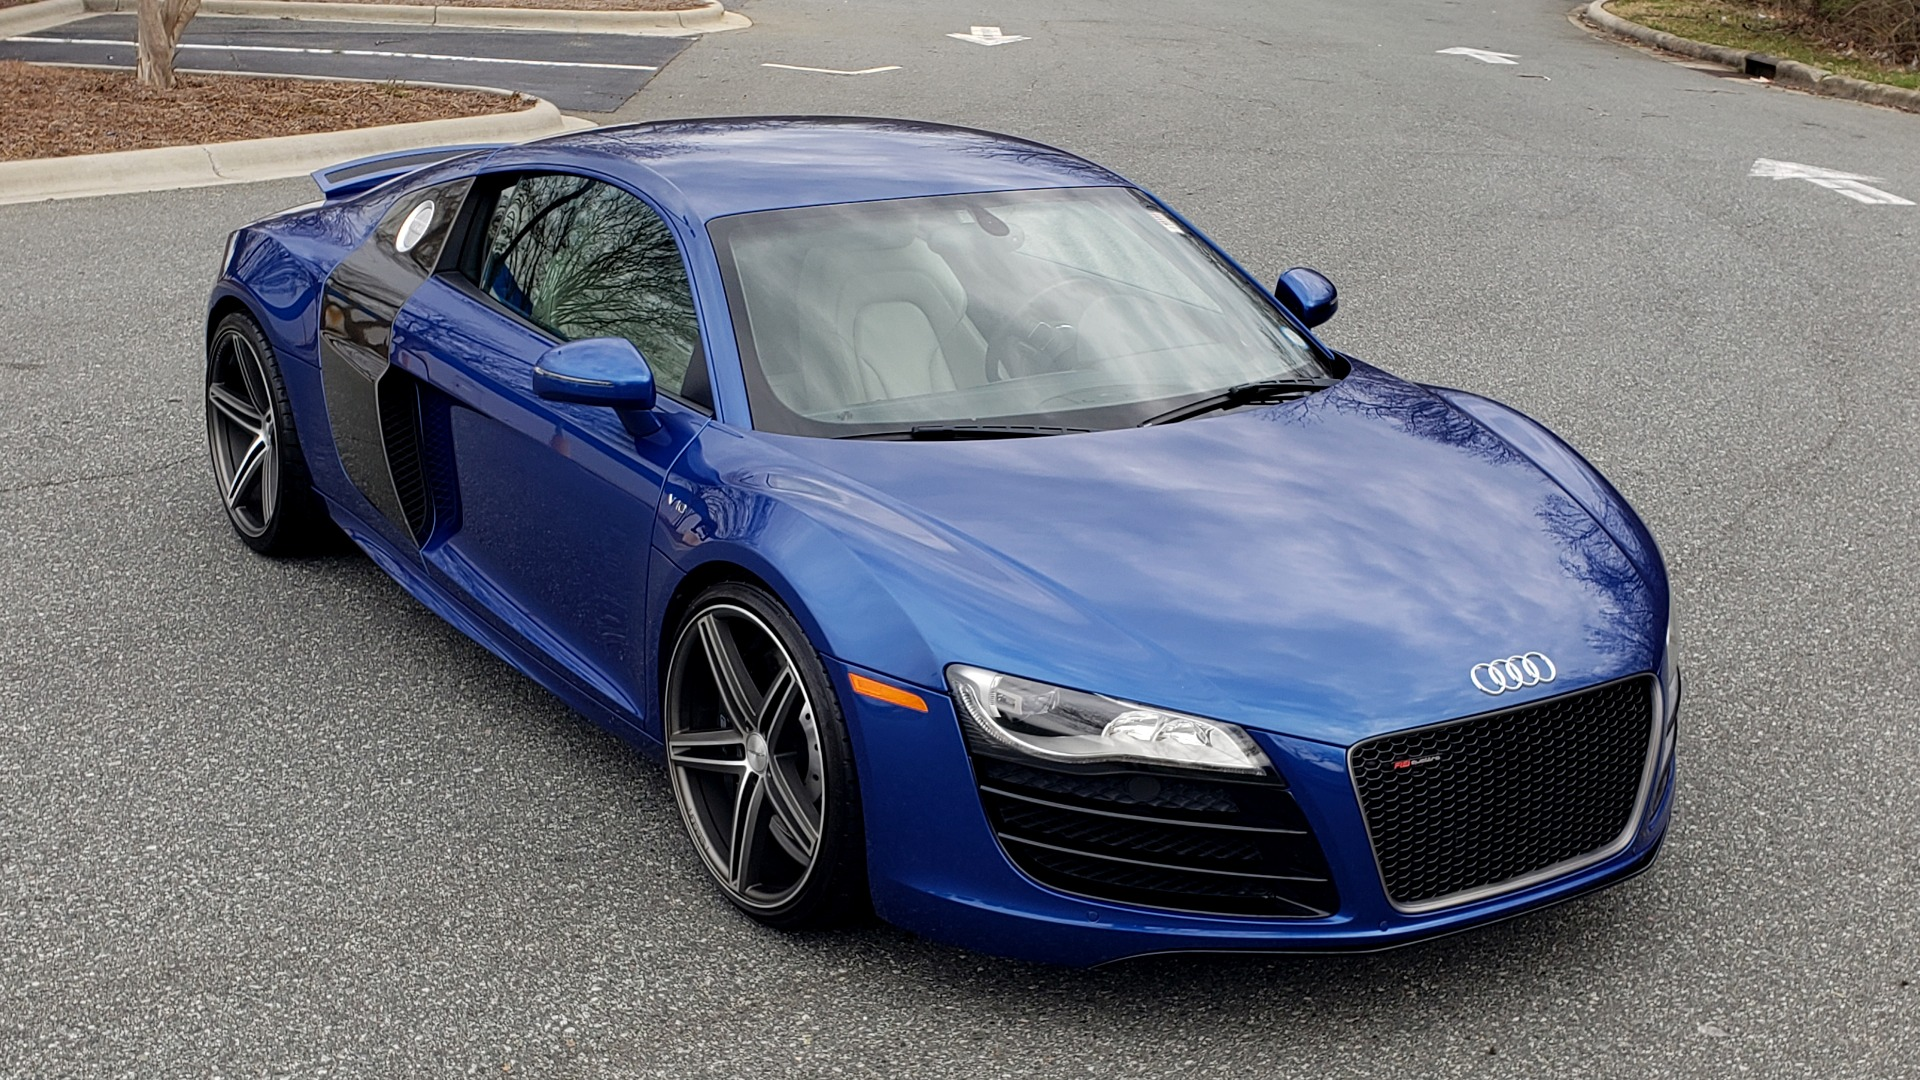 Used 2010 Audi R8 5.2L V10 / AWD / COUPE / NAV / 6-SPD AUTO / CUSTOM WHEELS for sale Sold at Formula Imports in Charlotte NC 28227 10